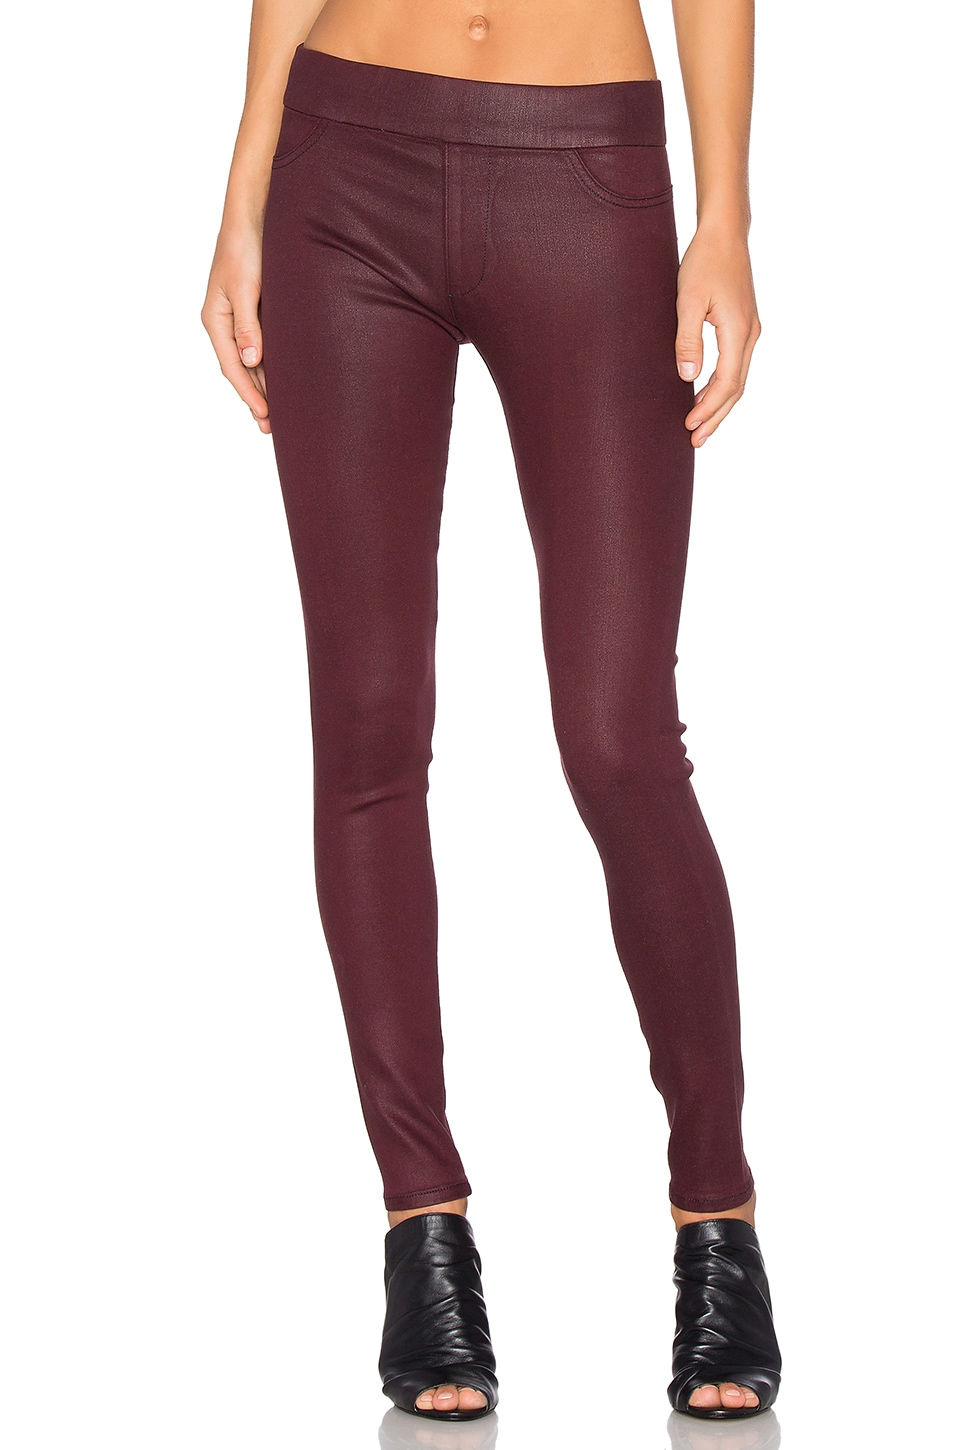 Twiggy Slip On Coated Legging by James Jeans